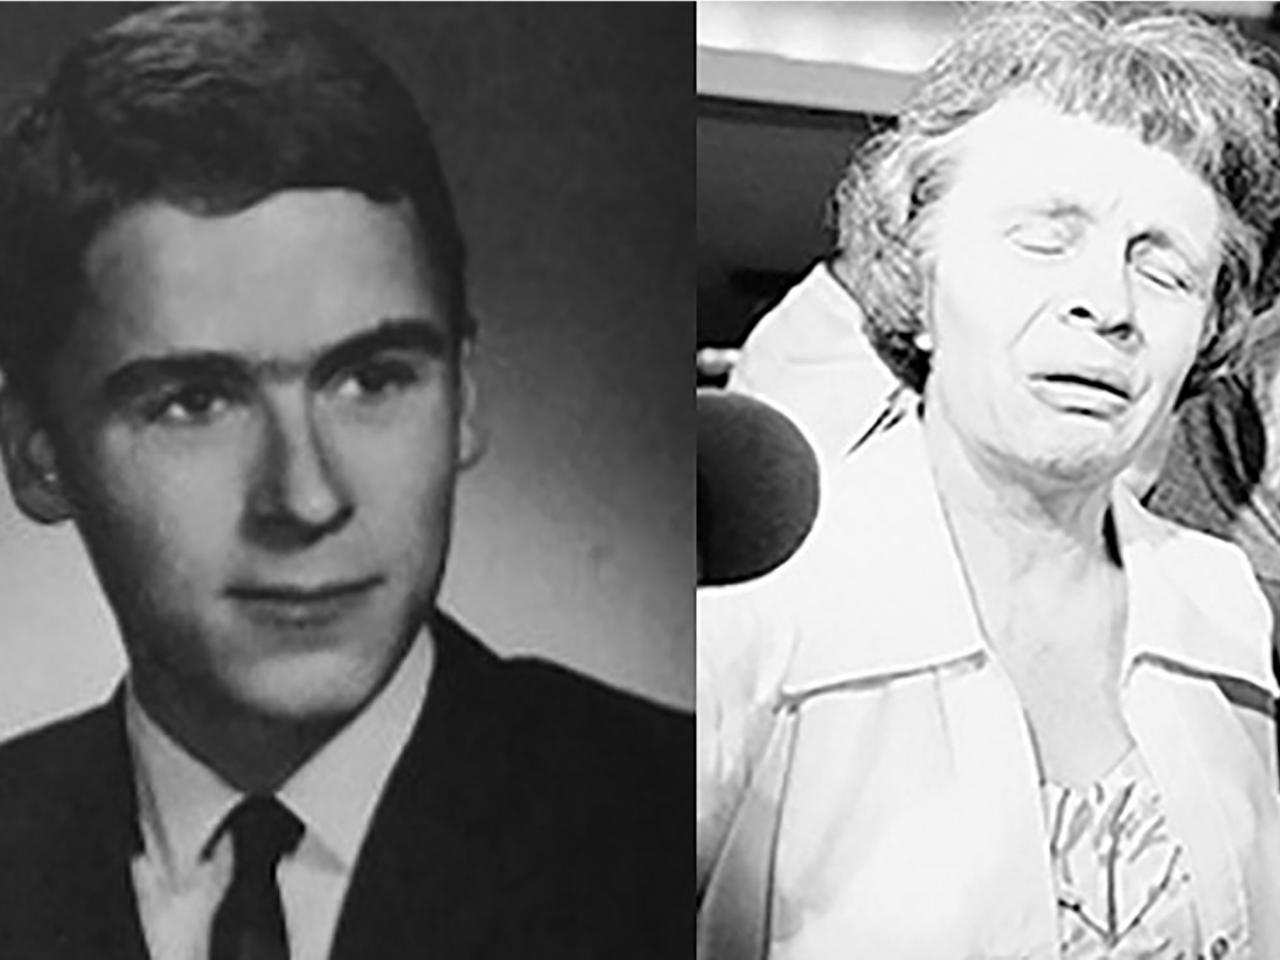 Ted Bundy Grew Up Thinking His Mother Was His Sister